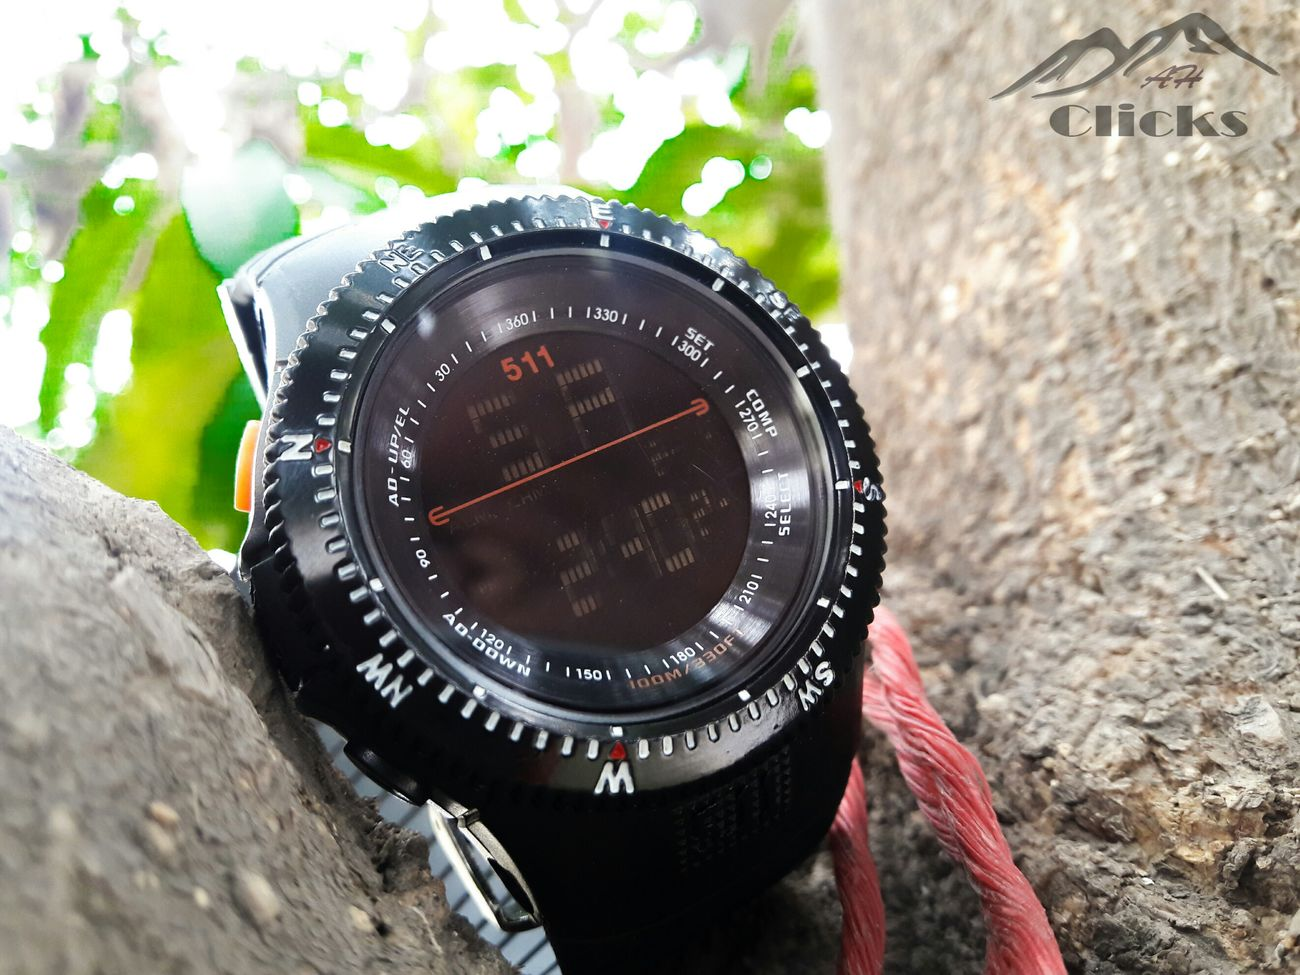 Outdoors Day Close-up People Watch Wristwear Wrist Watch 5.11 Tactical Sniper Armywithstyle Leasure Time Tree Outdoor Pictures